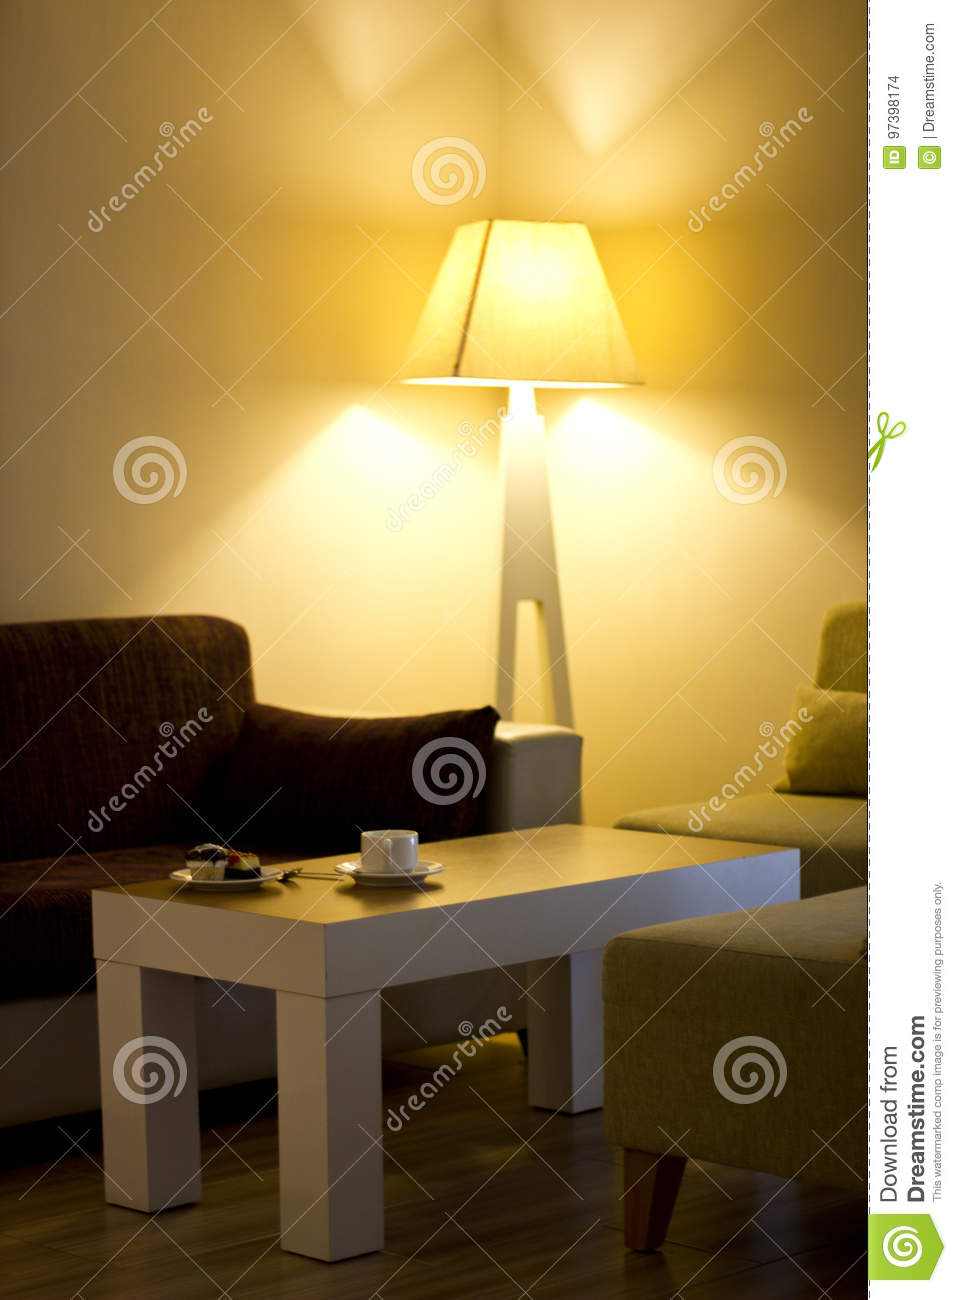 Living Room With The Cake On The Table And Big Yellow Lamp